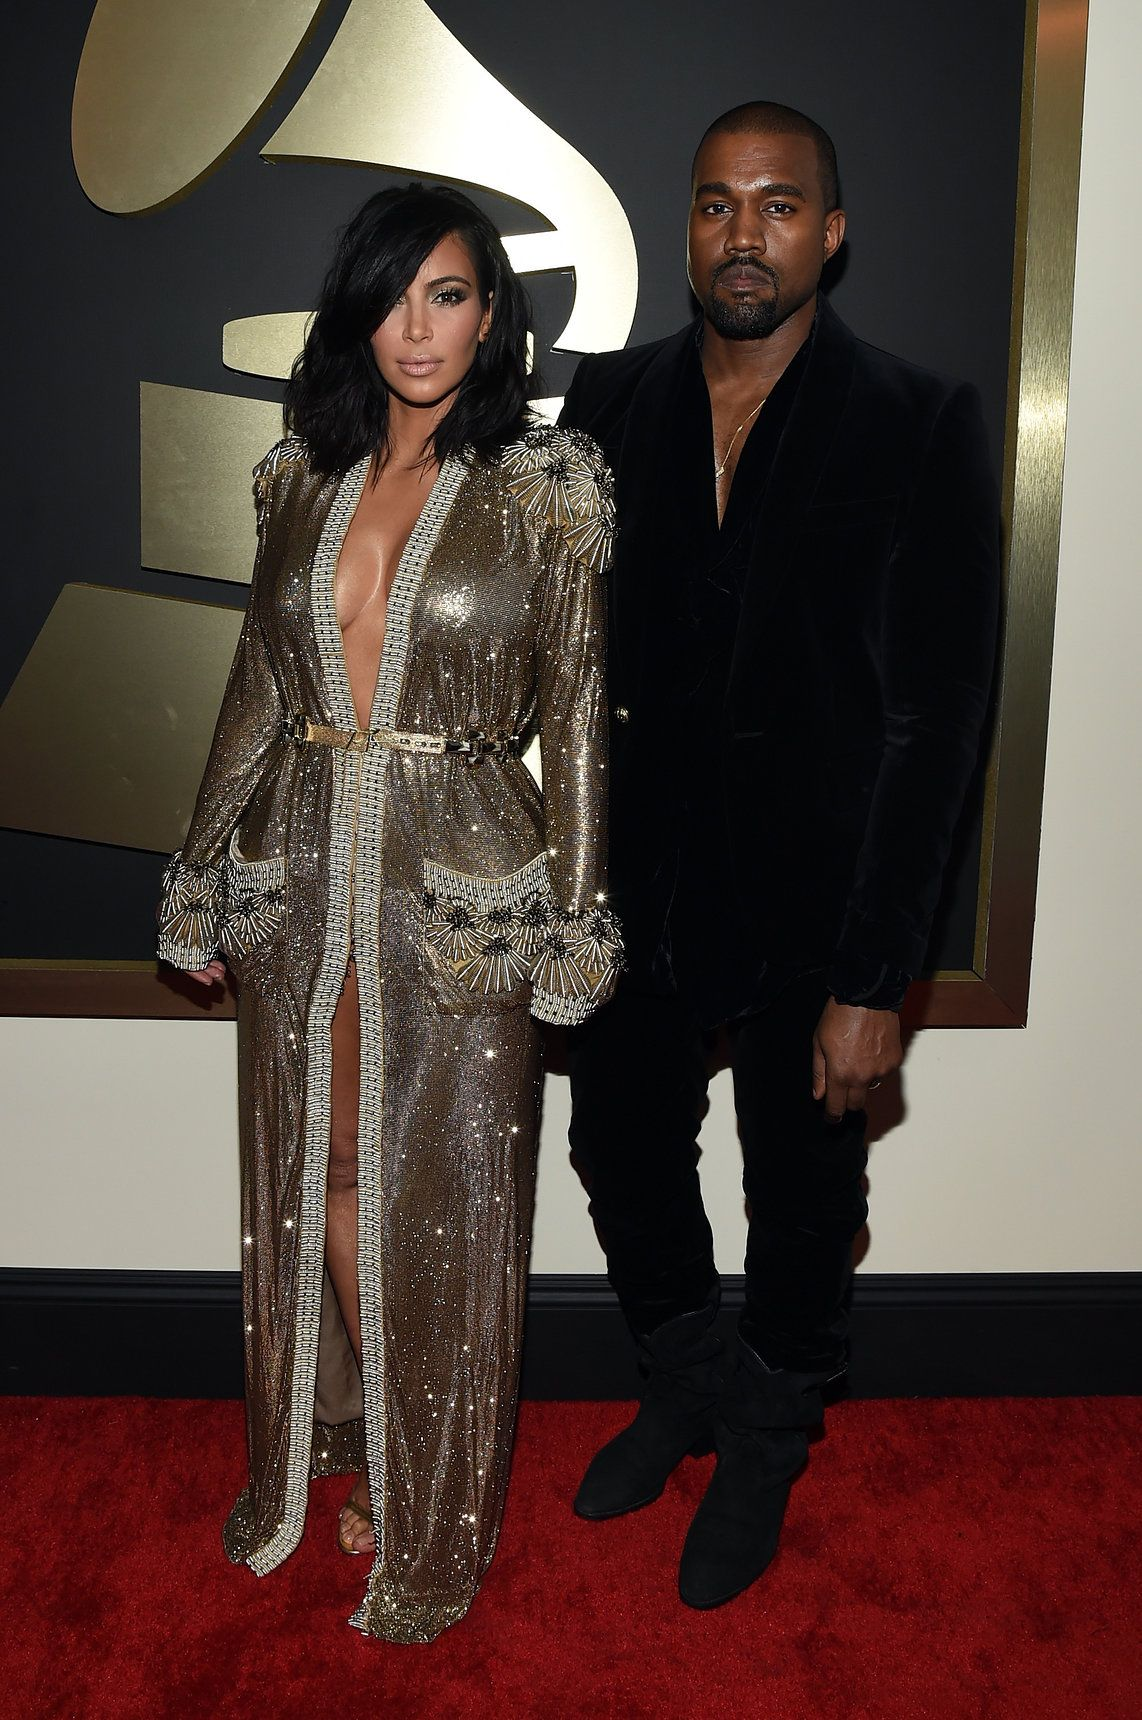 Grammys 2015 Fashion Live From The Red Carpet Red Carpet Fashion Fashion Celebrity Style Red Carpet